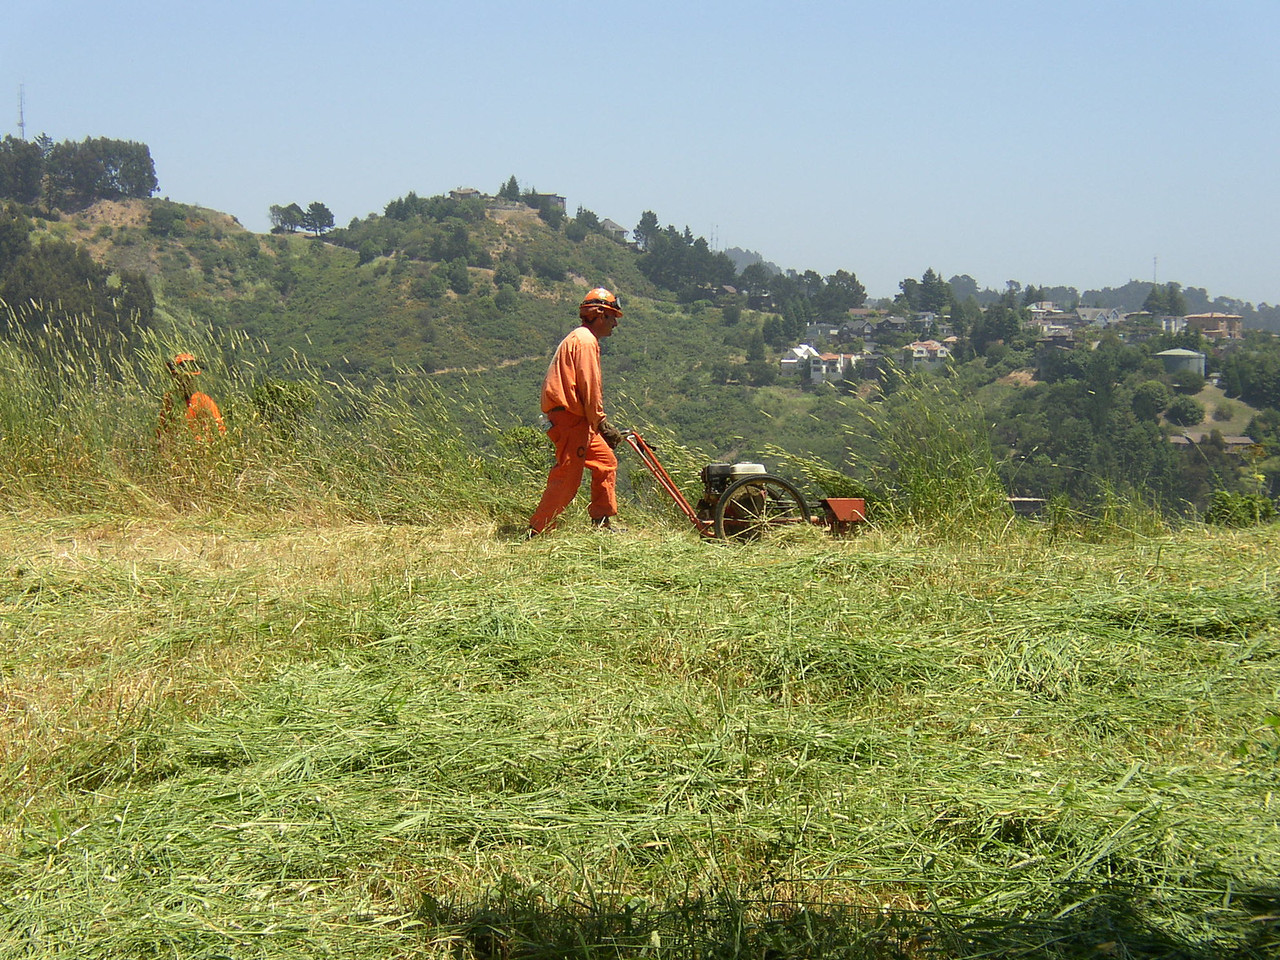 Mowing grass on a fuel break